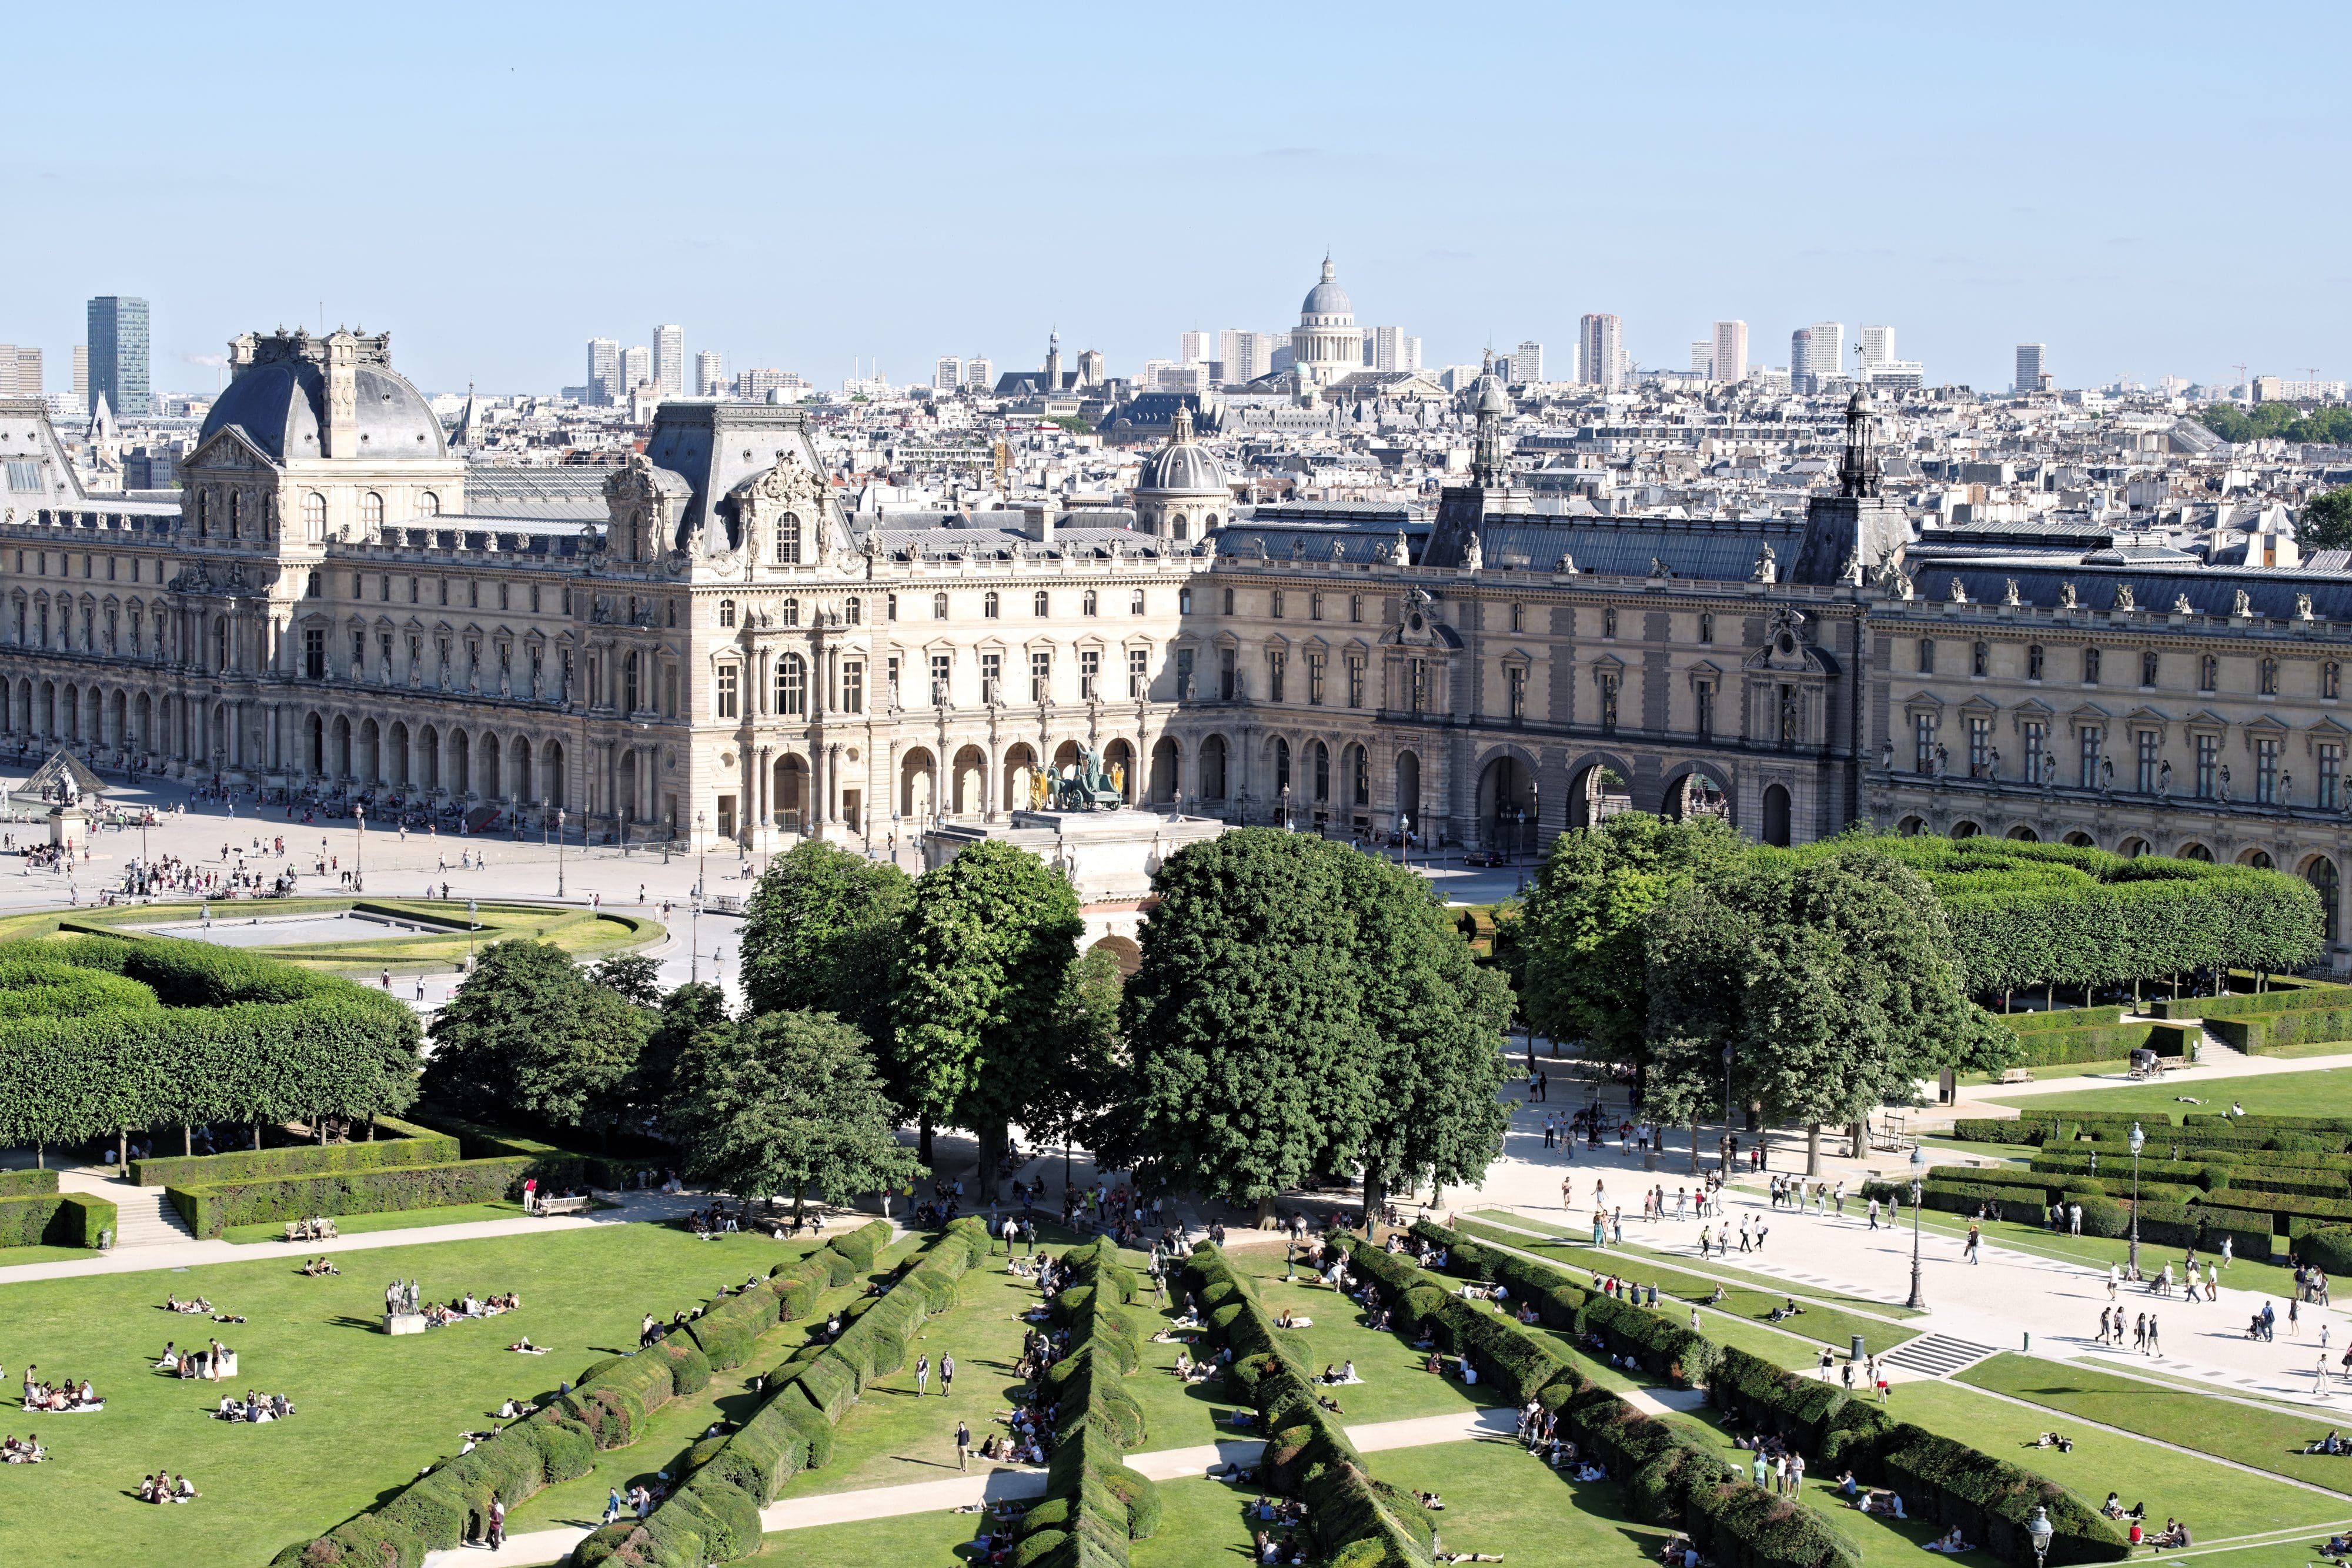 Beautiful fan-patterned gardens with green shrubs in front of the beautiful stone buildings of Tuileries Garden